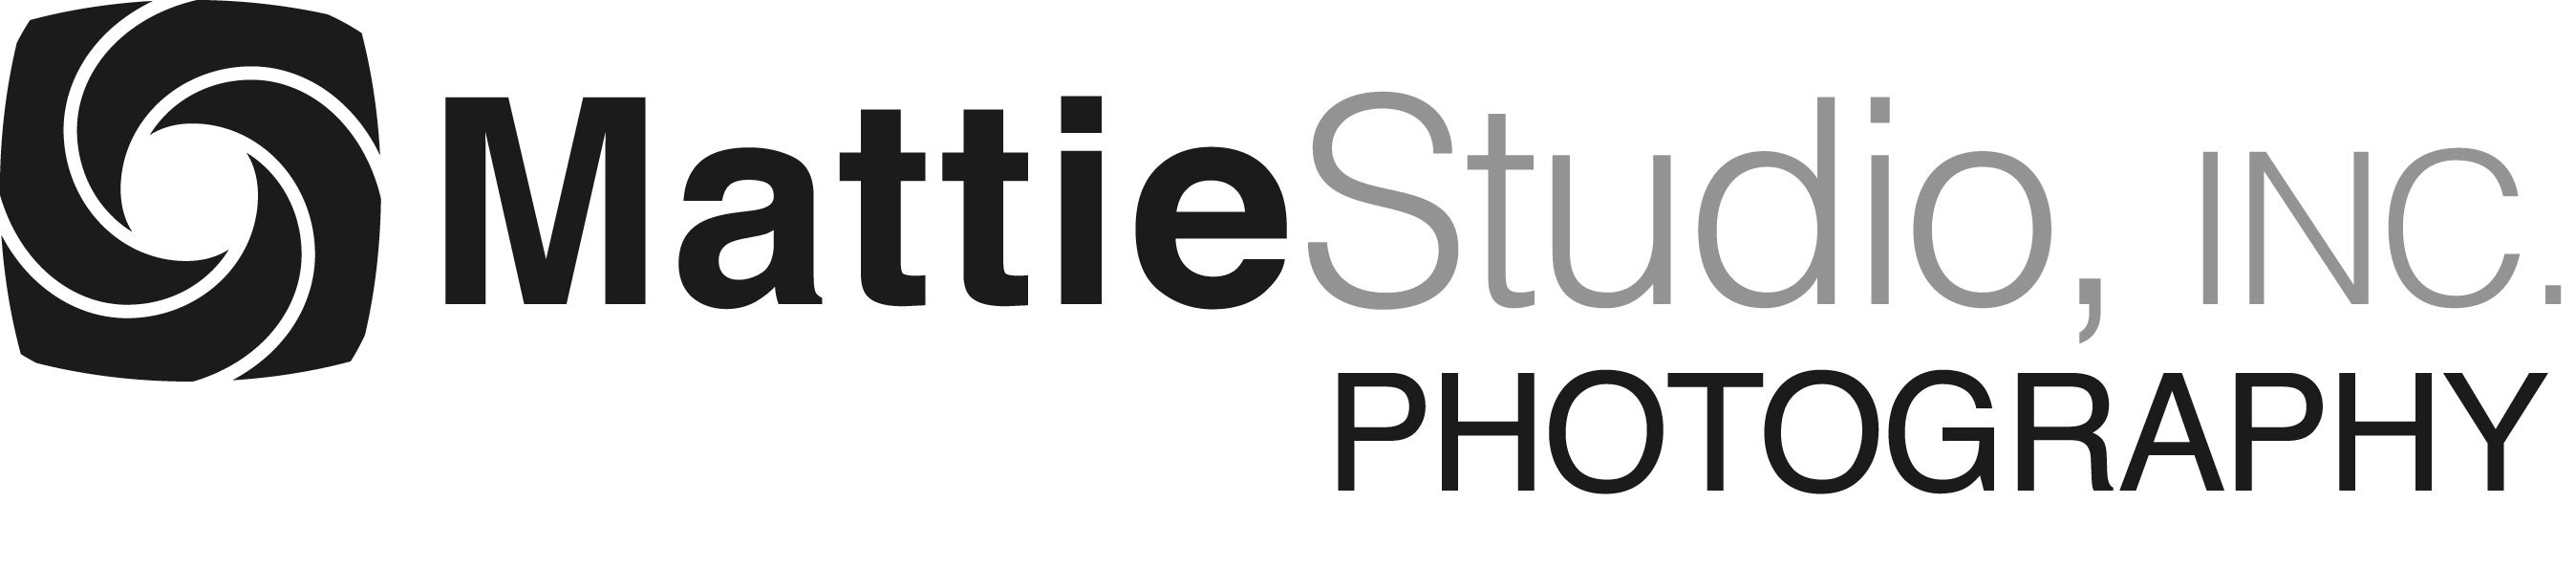 Gary Mattie Studio, Inc.